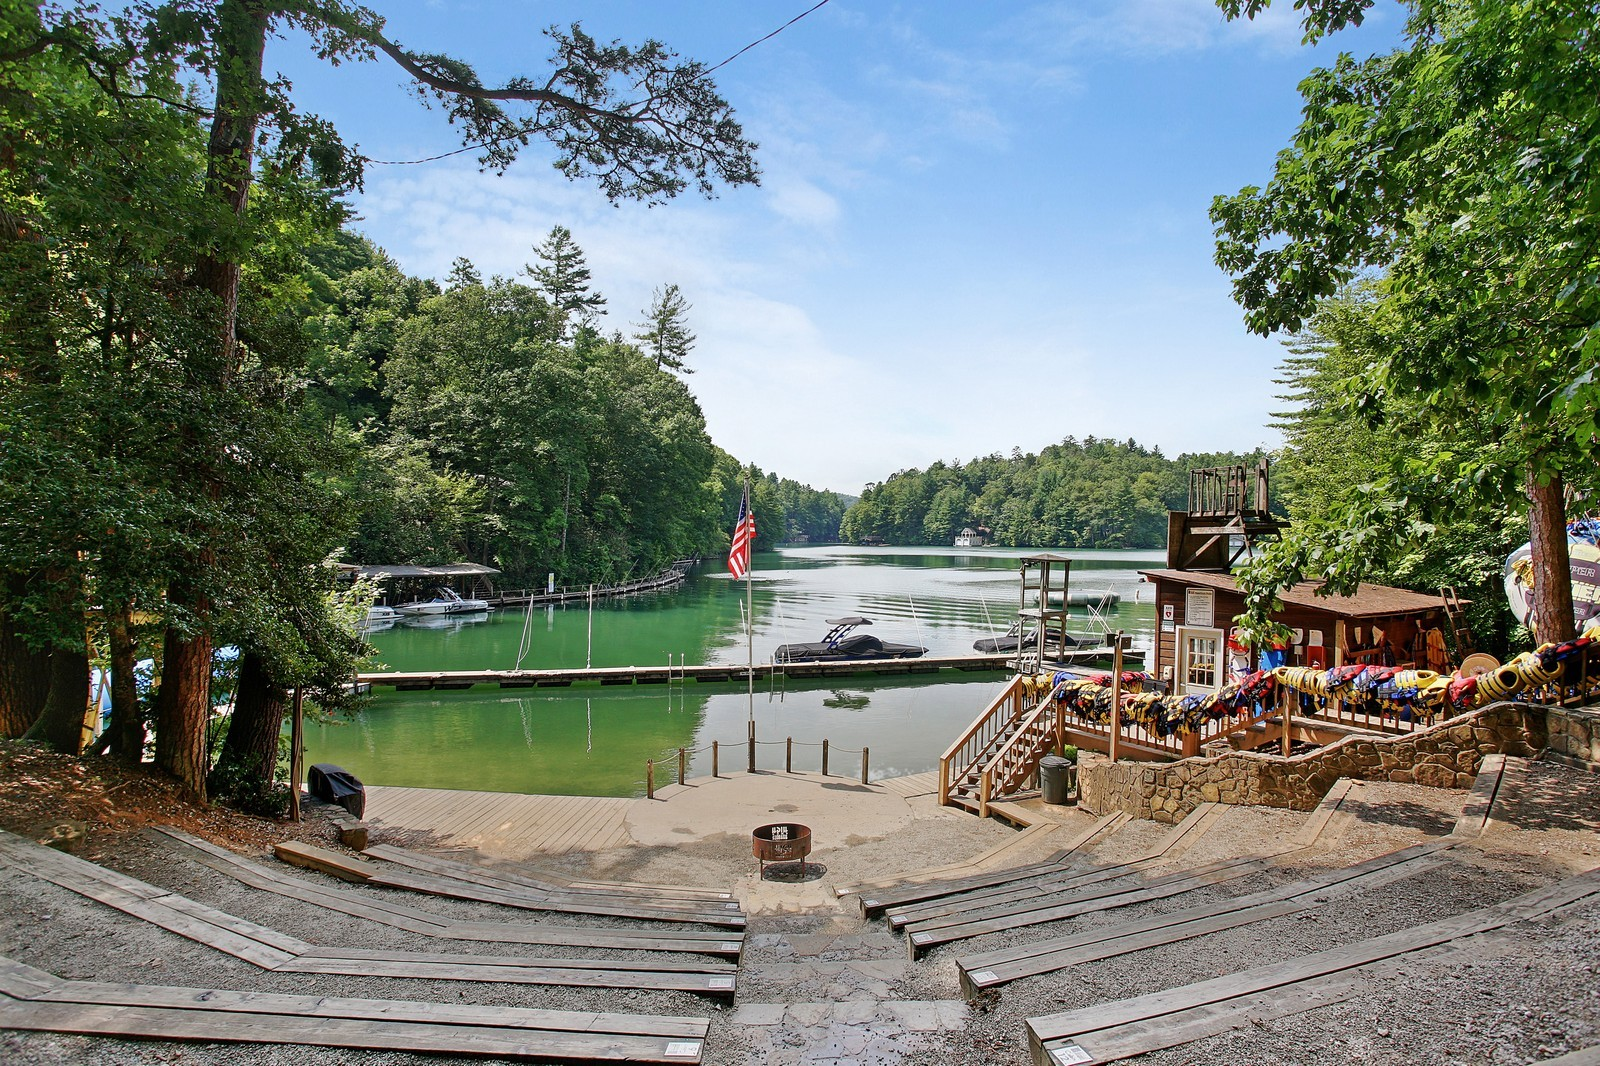 burt lake senior personals Find the best burt lake, mi home photographers to showcase your home or design project search portfolios, ratings, recommendations and reviews to find top local burt lake, mi home photographers.